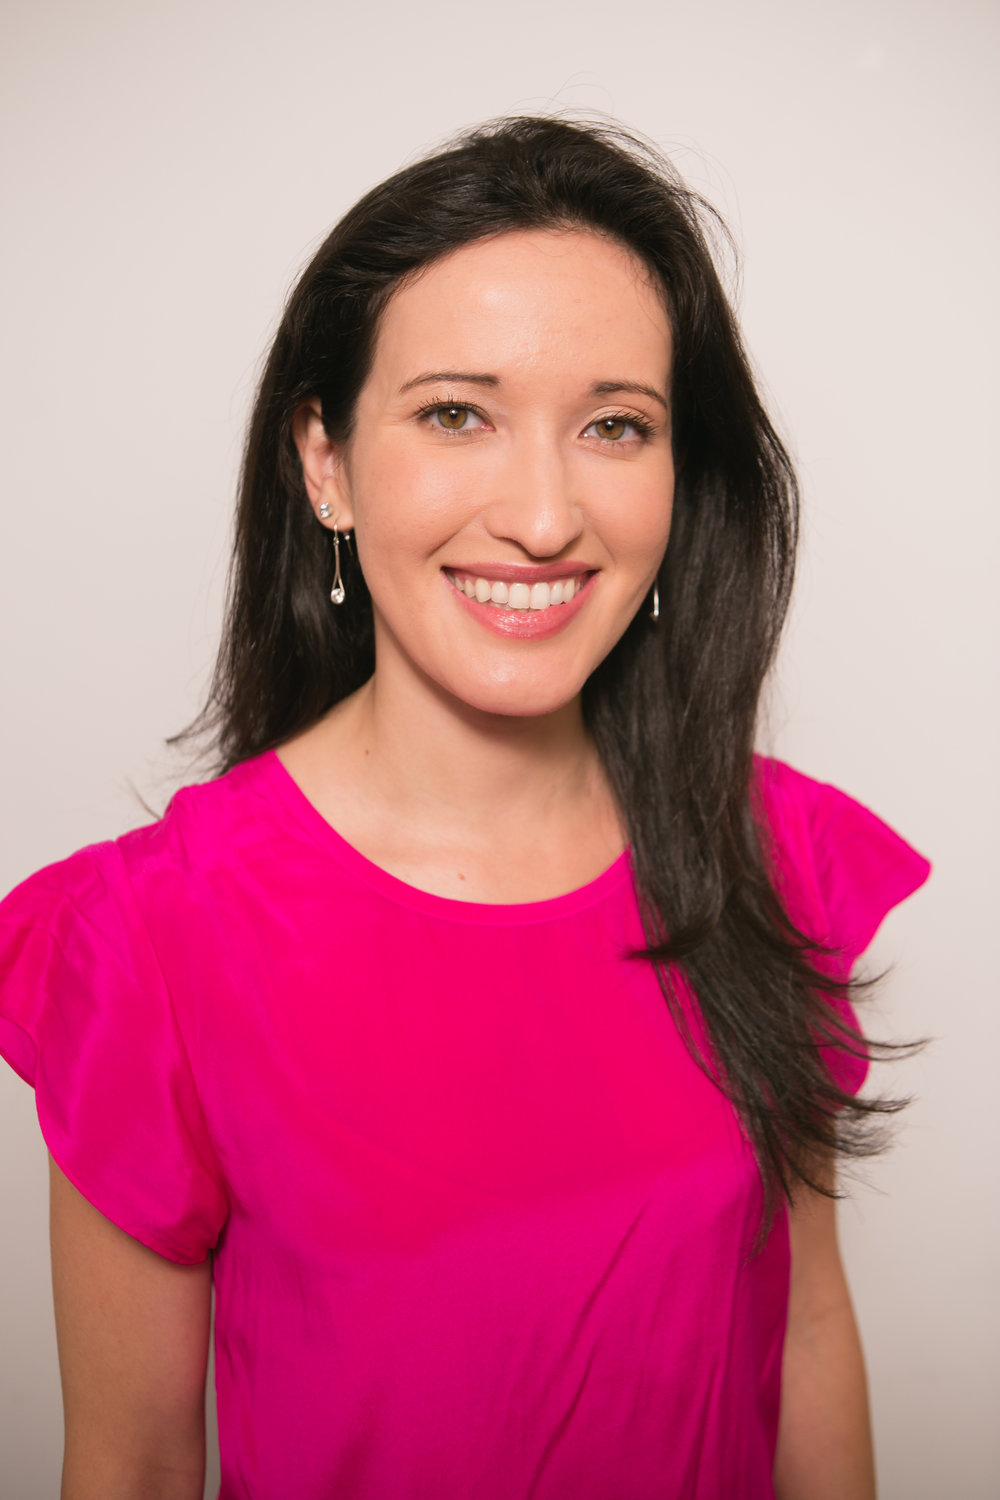 Vanessa Alexandra Pestritto, Lattice Ventures